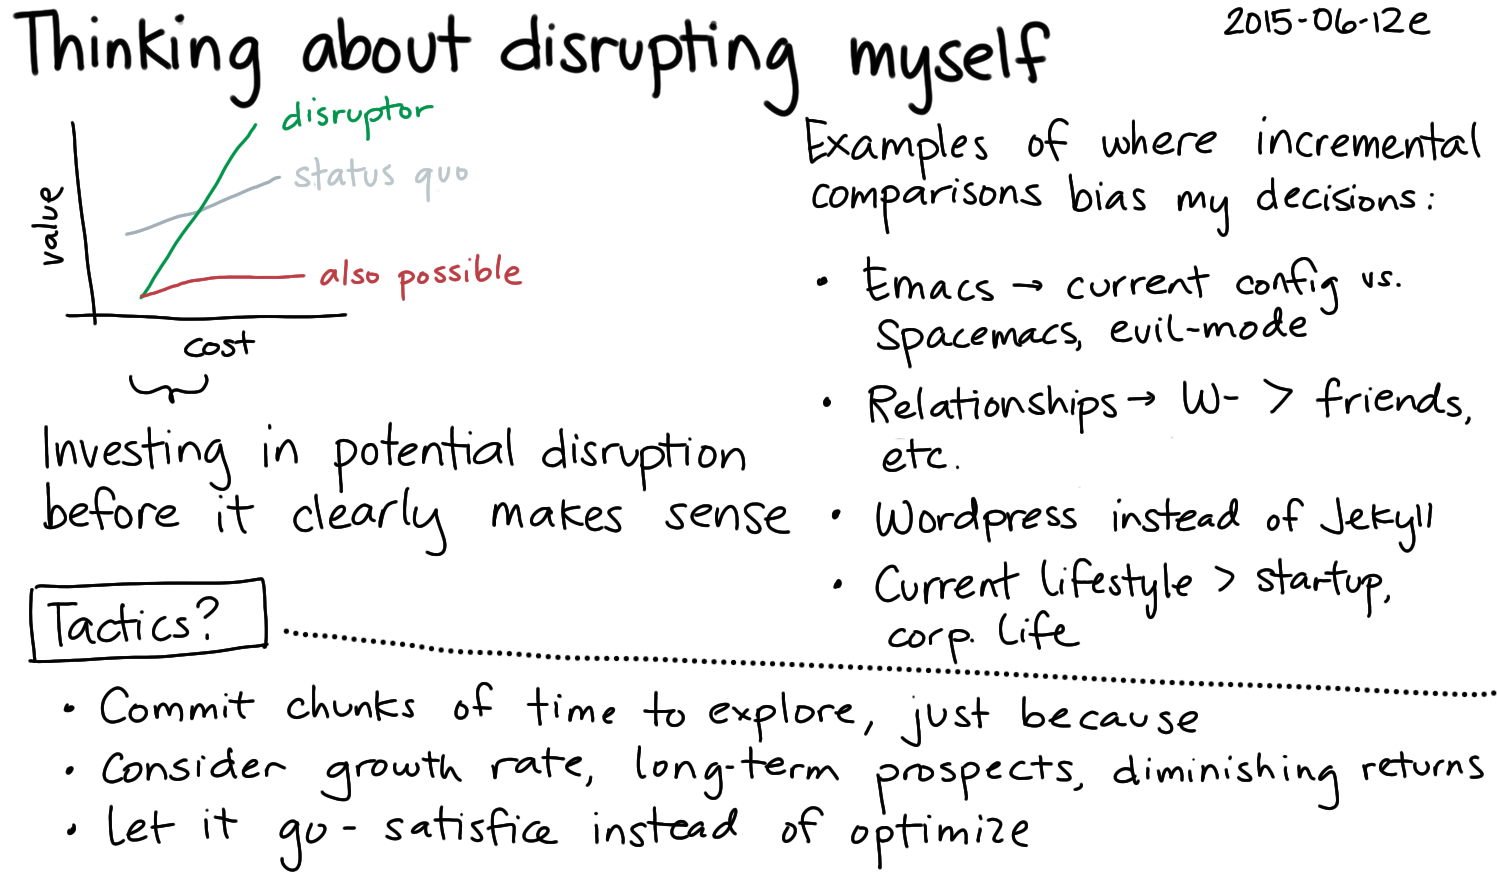 2015-06-12e Thinking about disrupting myself -- index card #experiment #disruption.png